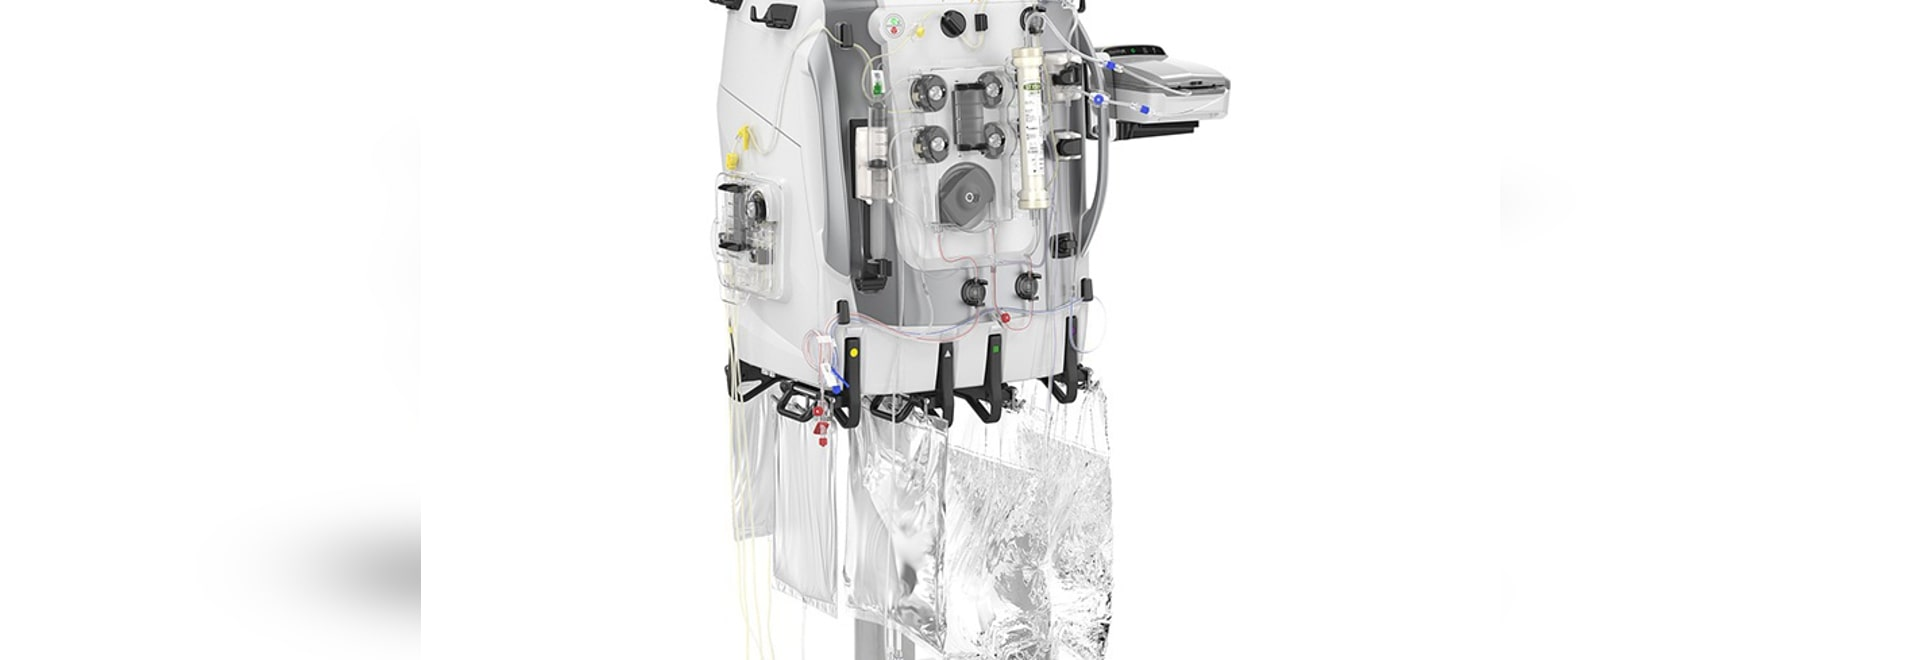 Baxter's PrixMax Renal Replacement and Organ Support System Cleared in Europe